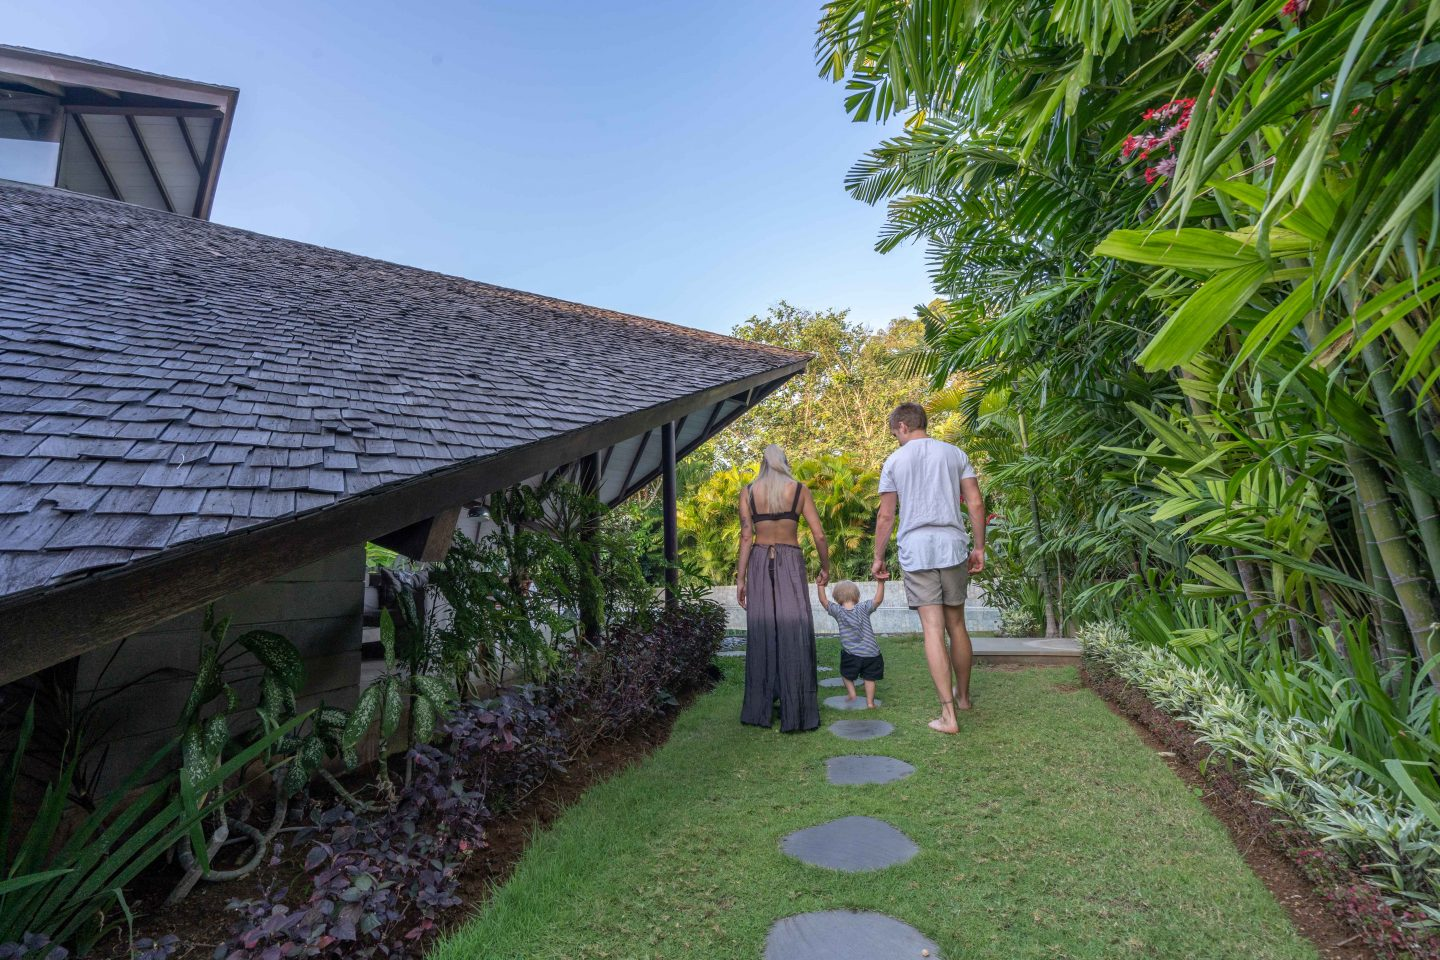 Entrance to our Villa @ The Layar - Live Life and Roam